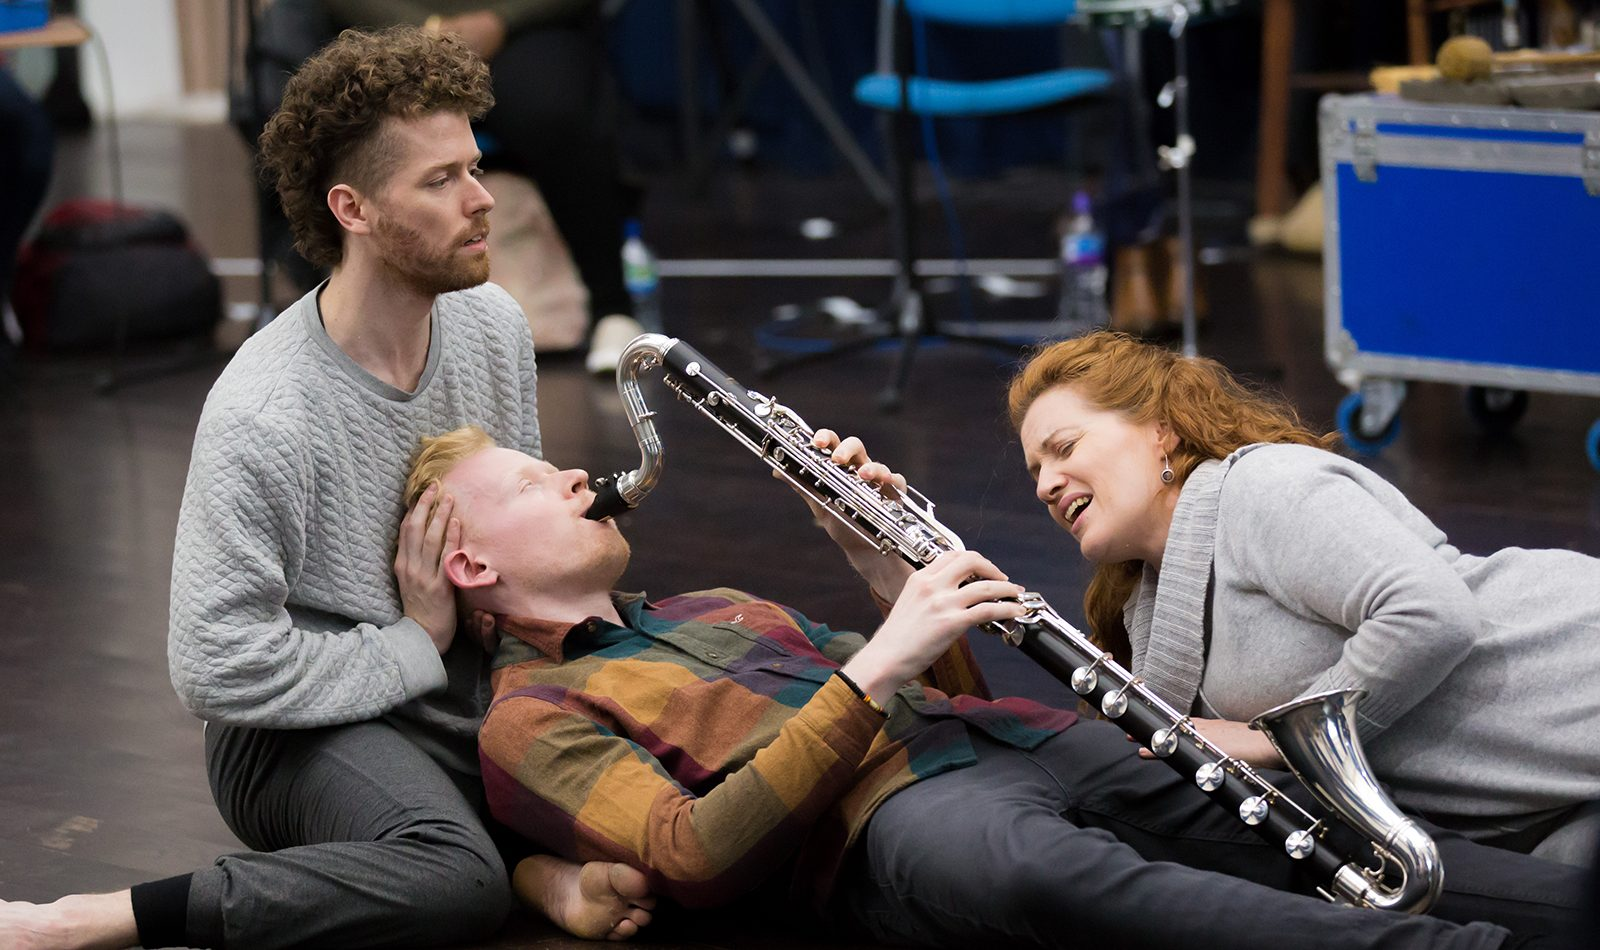 On the floor of a rehearsal room, two dancers and a clarinet player interact